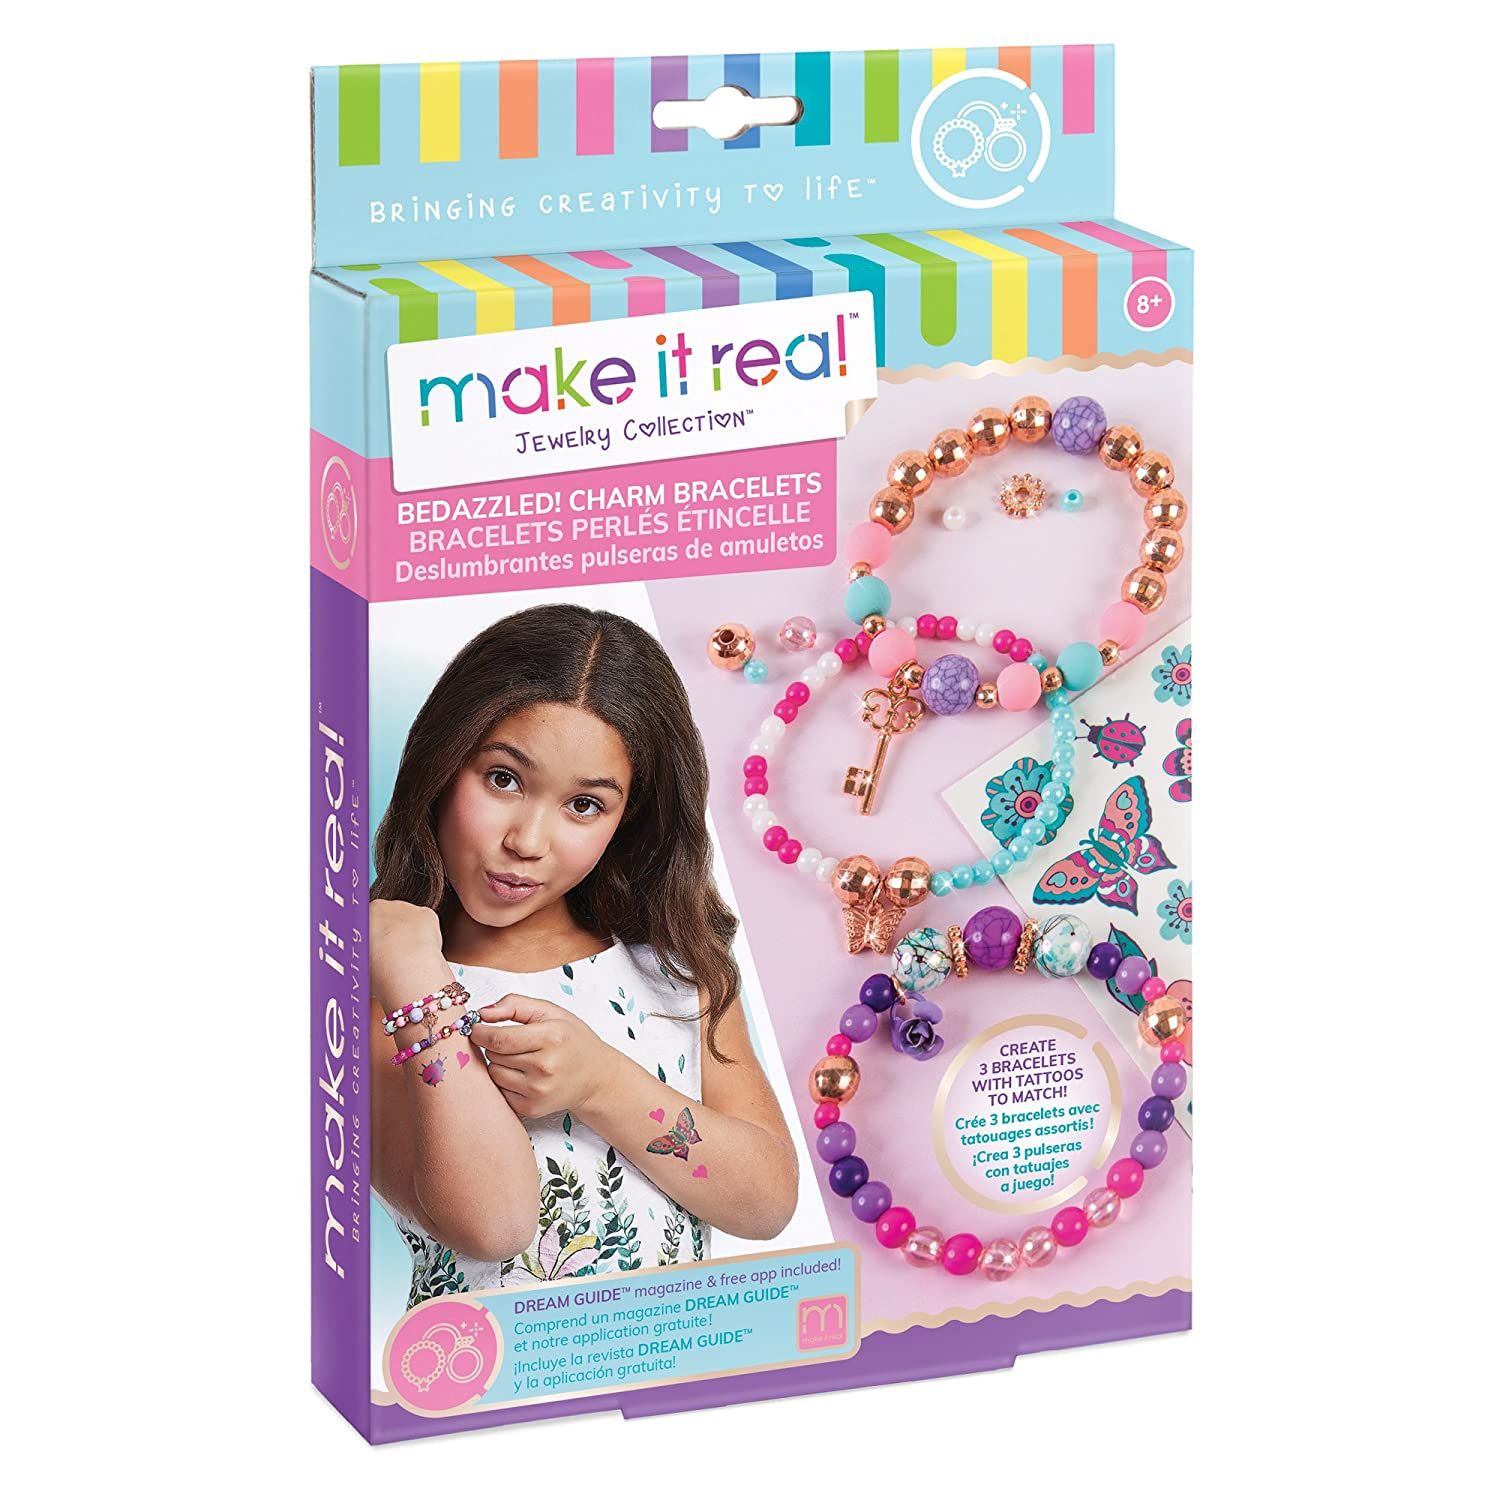 Make It Real - Bedazzled! Charm Bracelets - Blooming Creativity. DIY Charm Bracelet Making Kit for Girls. Arts and Crafts Kit to Create Unique Tween Bracelets with Beads, Charms and Tattoo Stickers